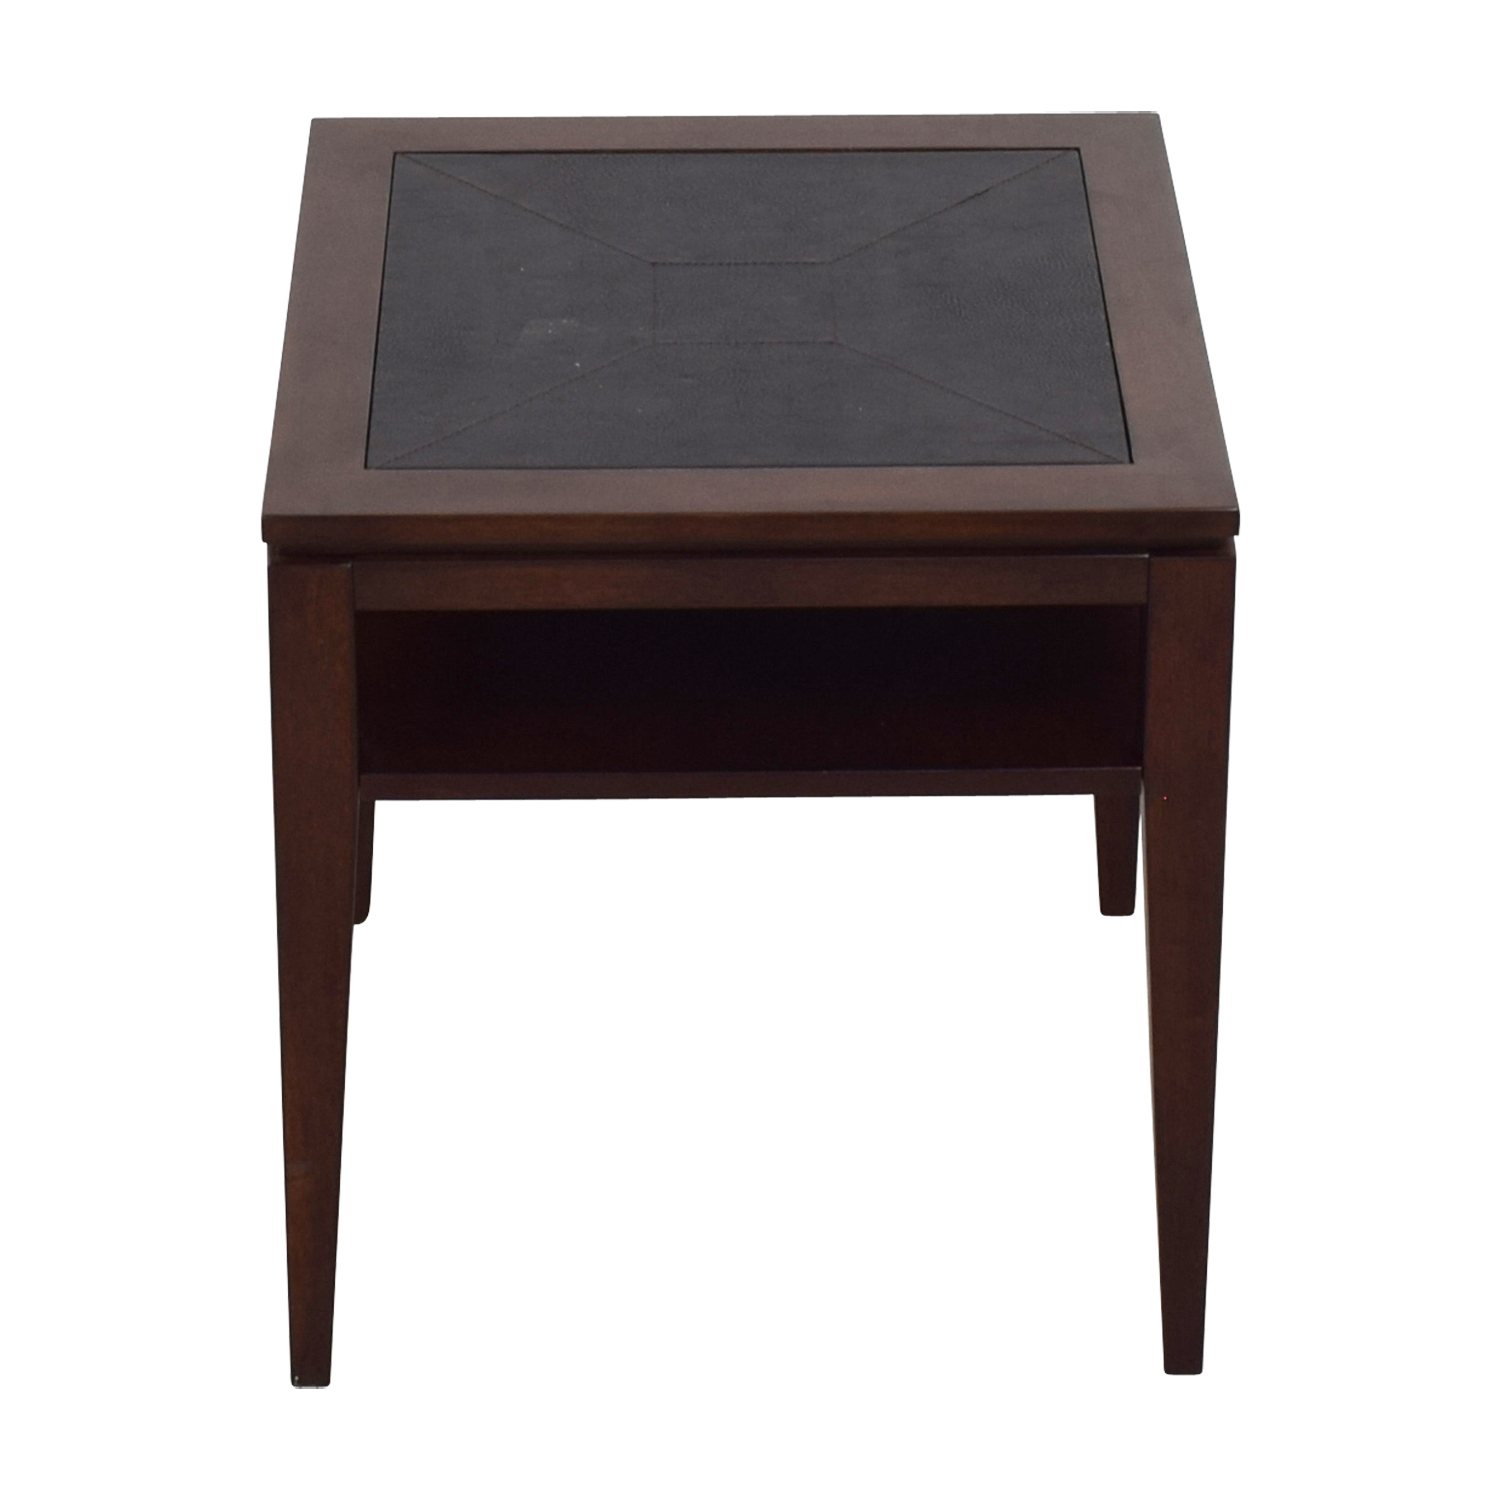 shop Raymour & Flanigan Raymour & Flanigan End Table online